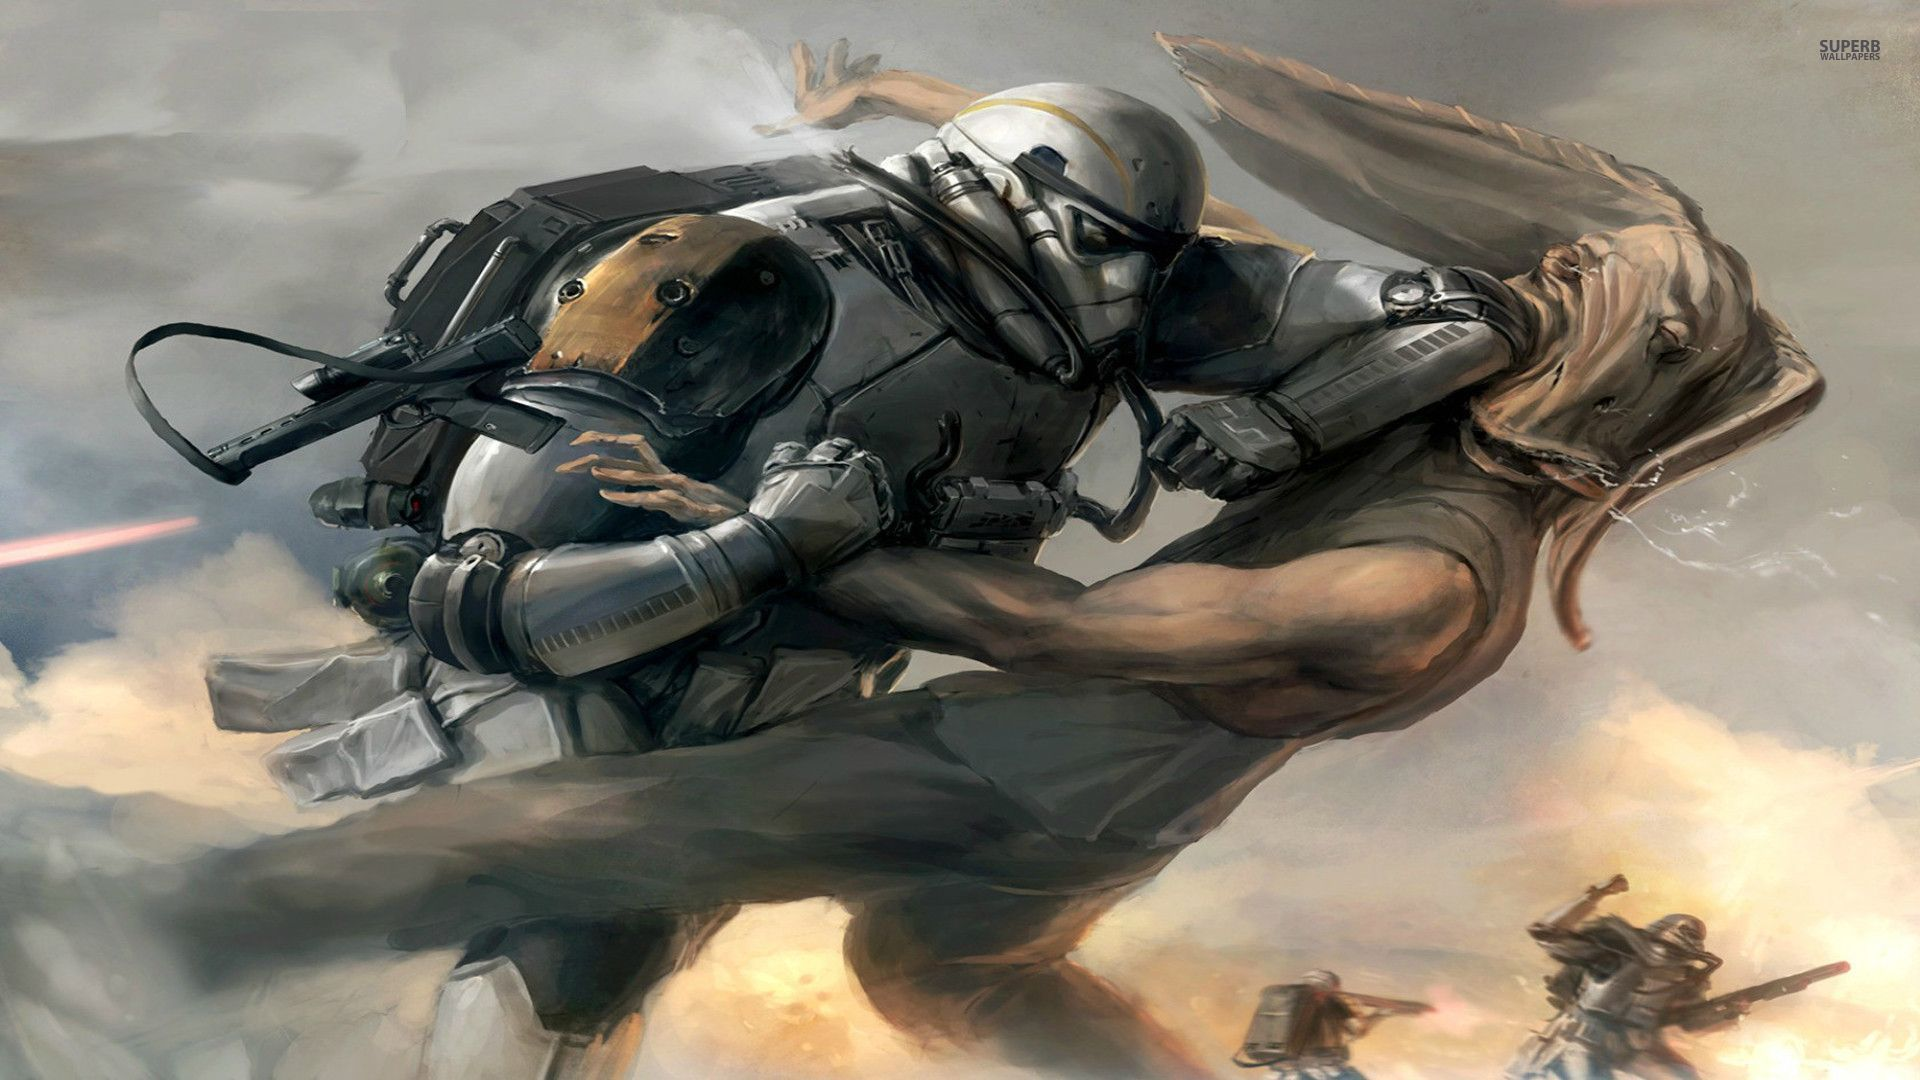 Epic Battle Wallpaper 1920 x 1080 Star Wars battle